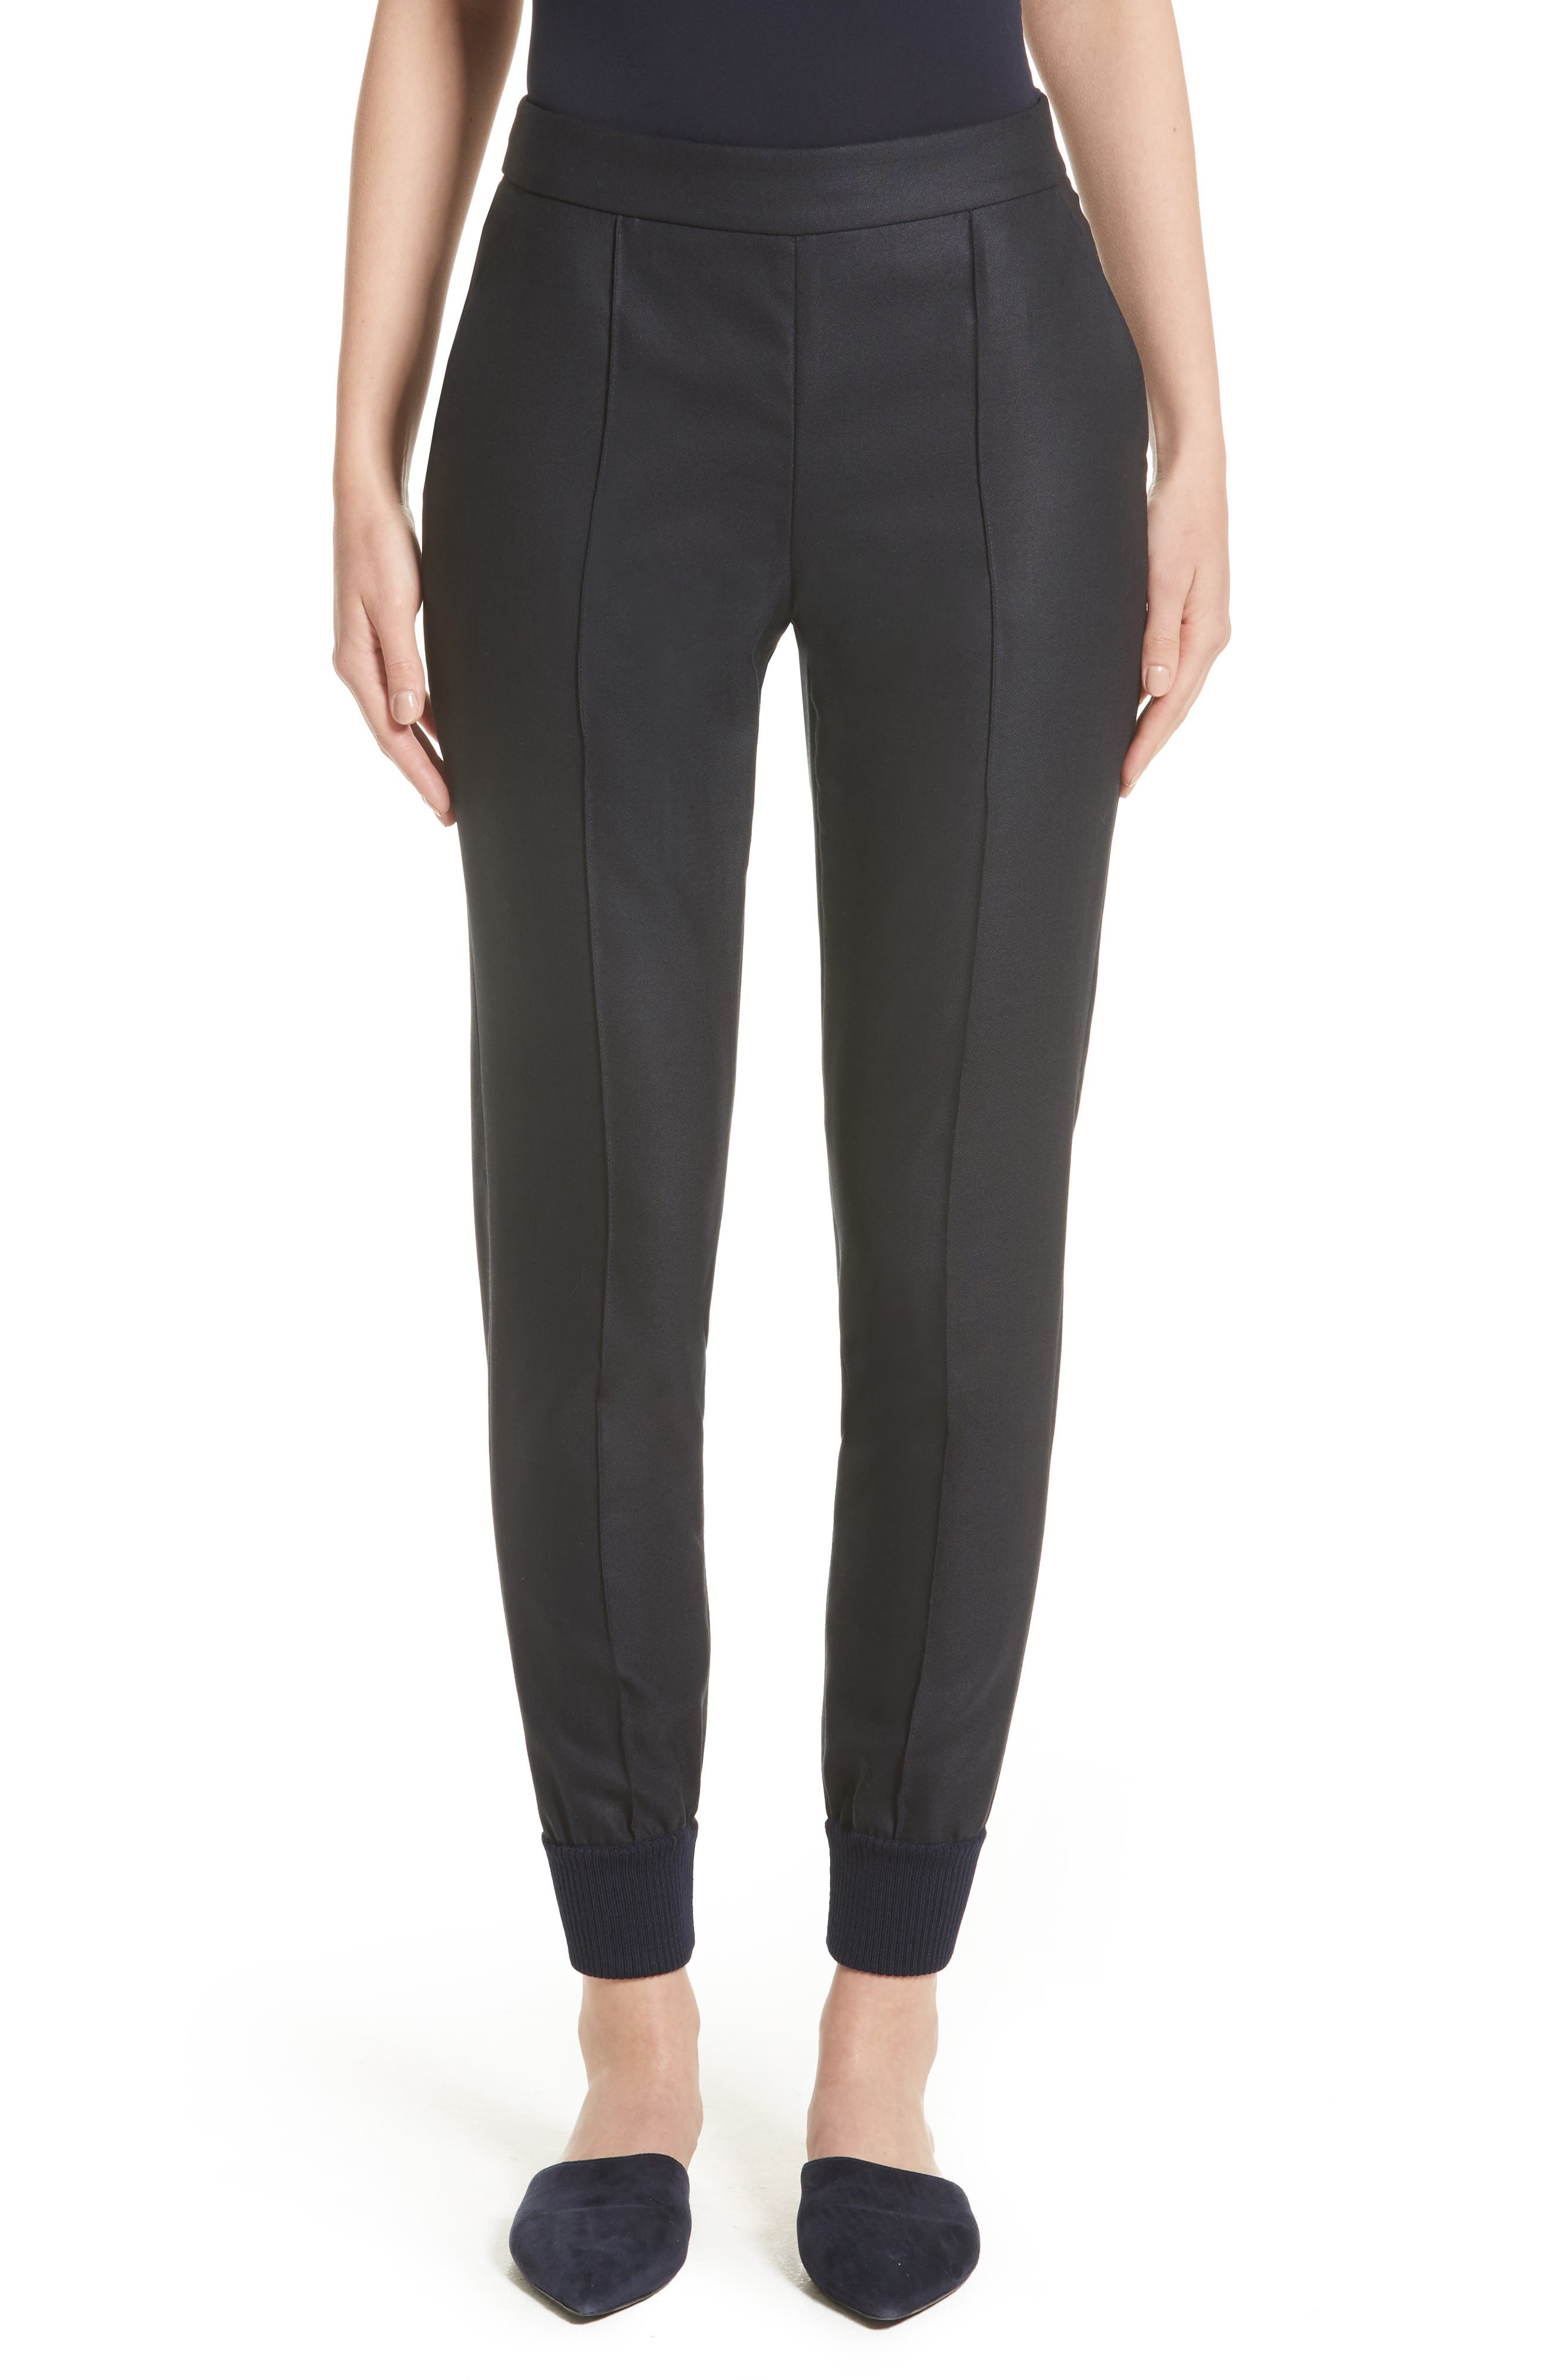 Alternate Image 1 Selected - St. John Collection Stretch Birdseye Skinny Pants